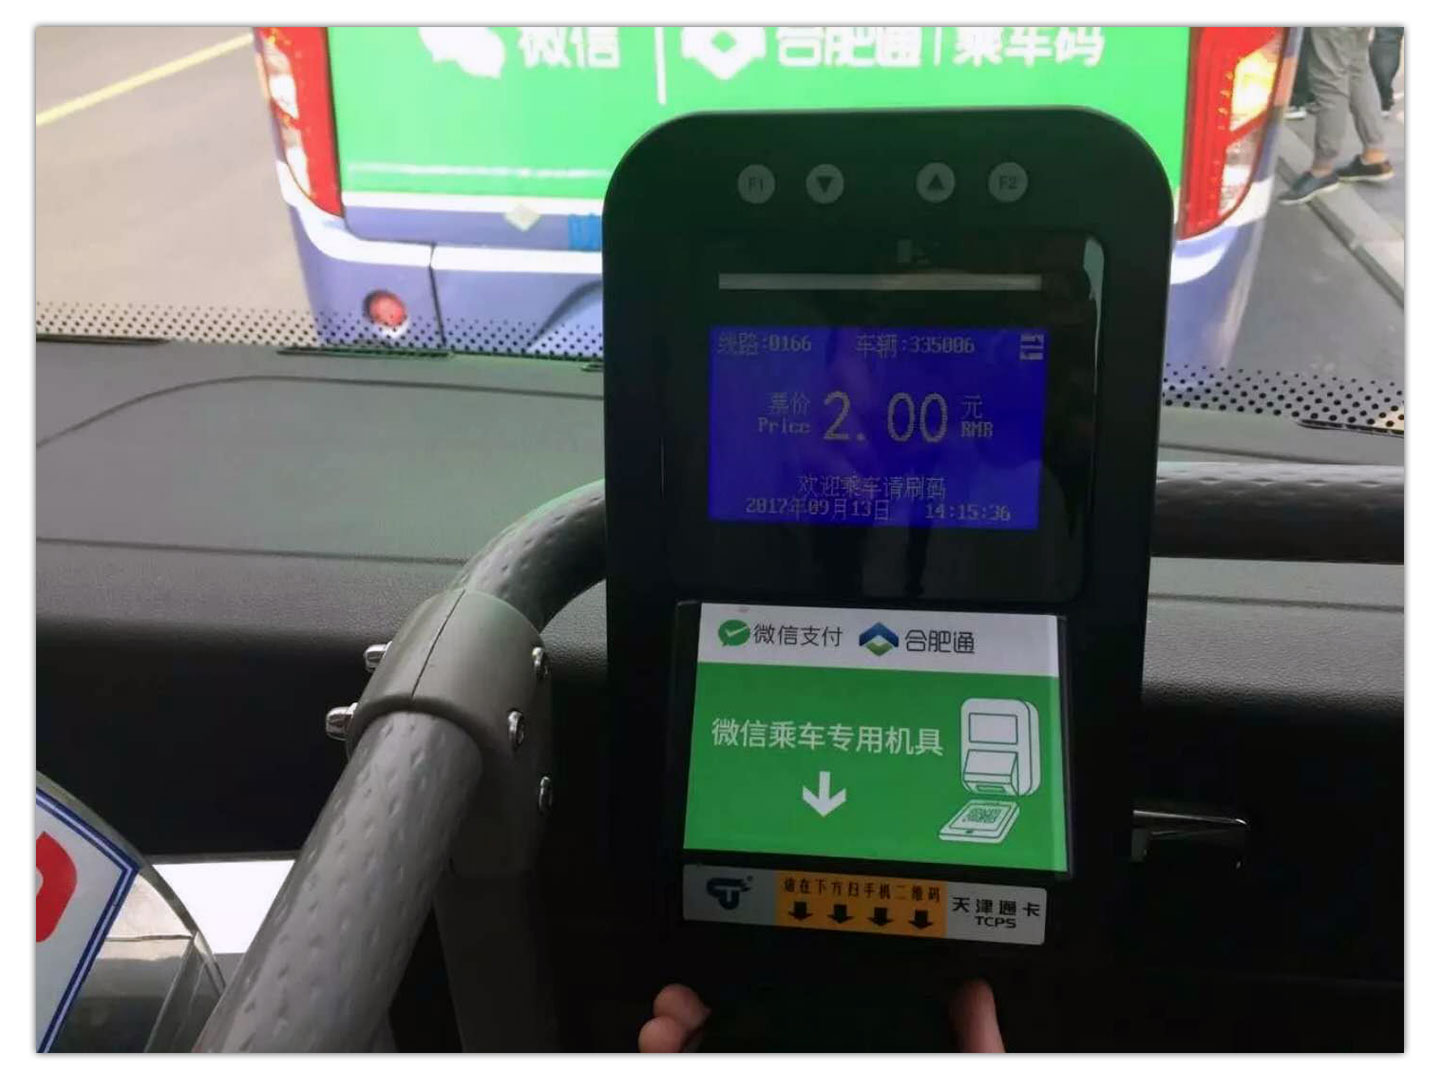 WeChat Bus Ticketing System